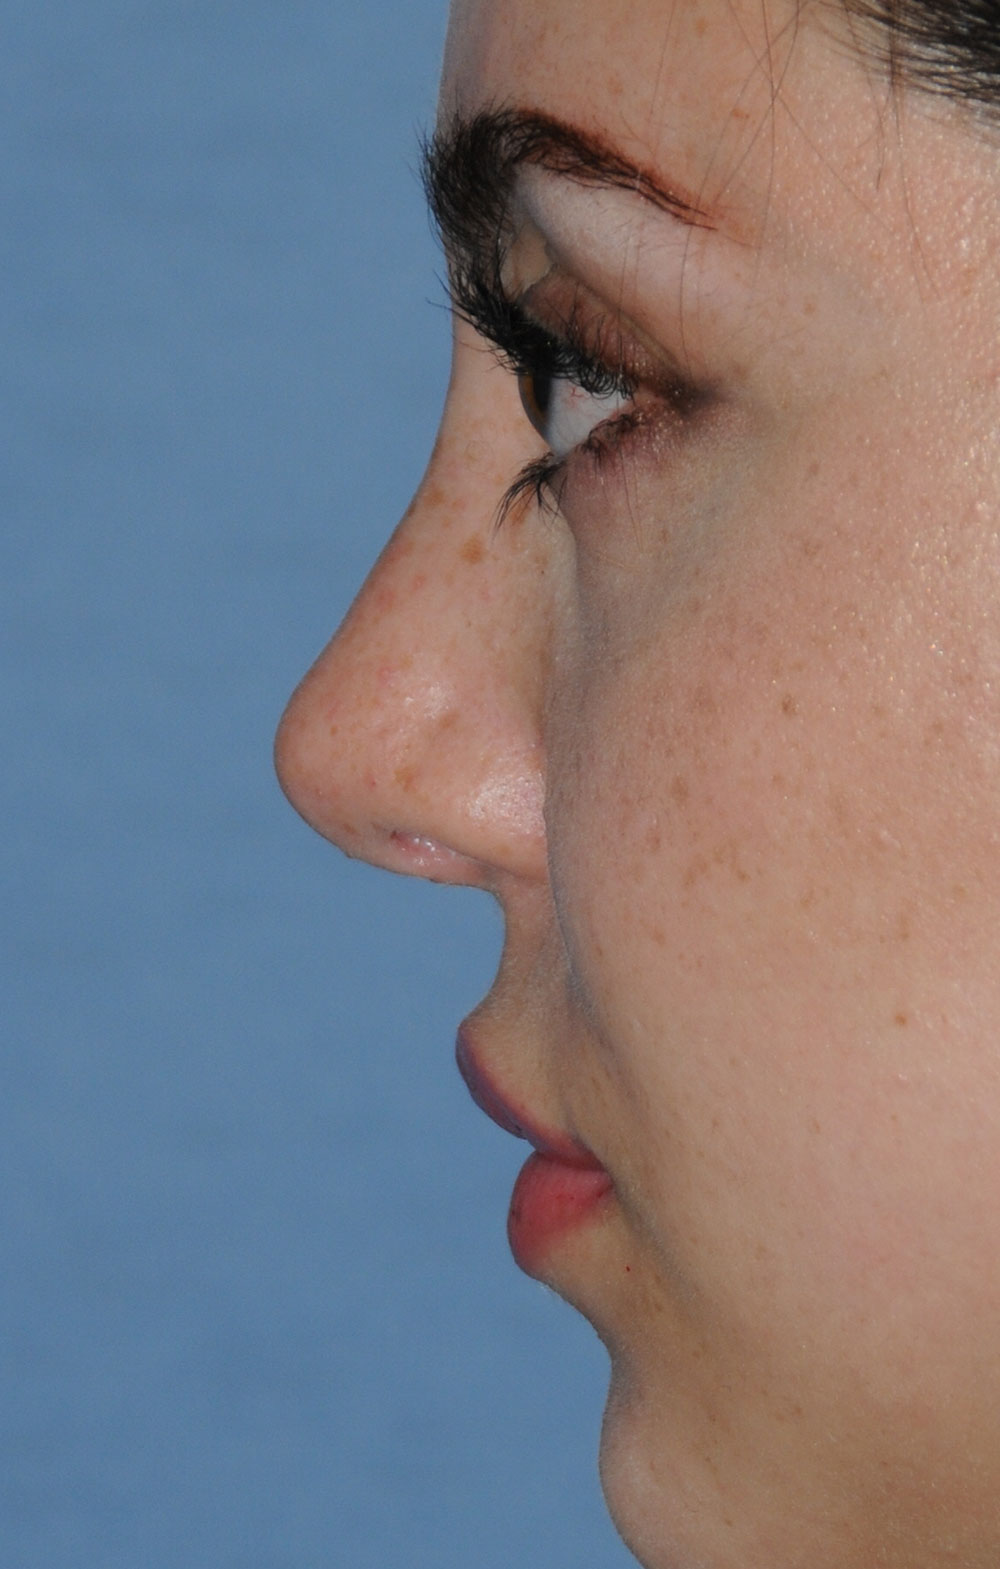 Rhinoplasty for a Bulbous Nasal Tip, Prominent Nasal Bridge, Short Nose / Columella and Lip Fat Transfer for Small Thin Lateral Upper Outer Lips After Left Profile Close Up View